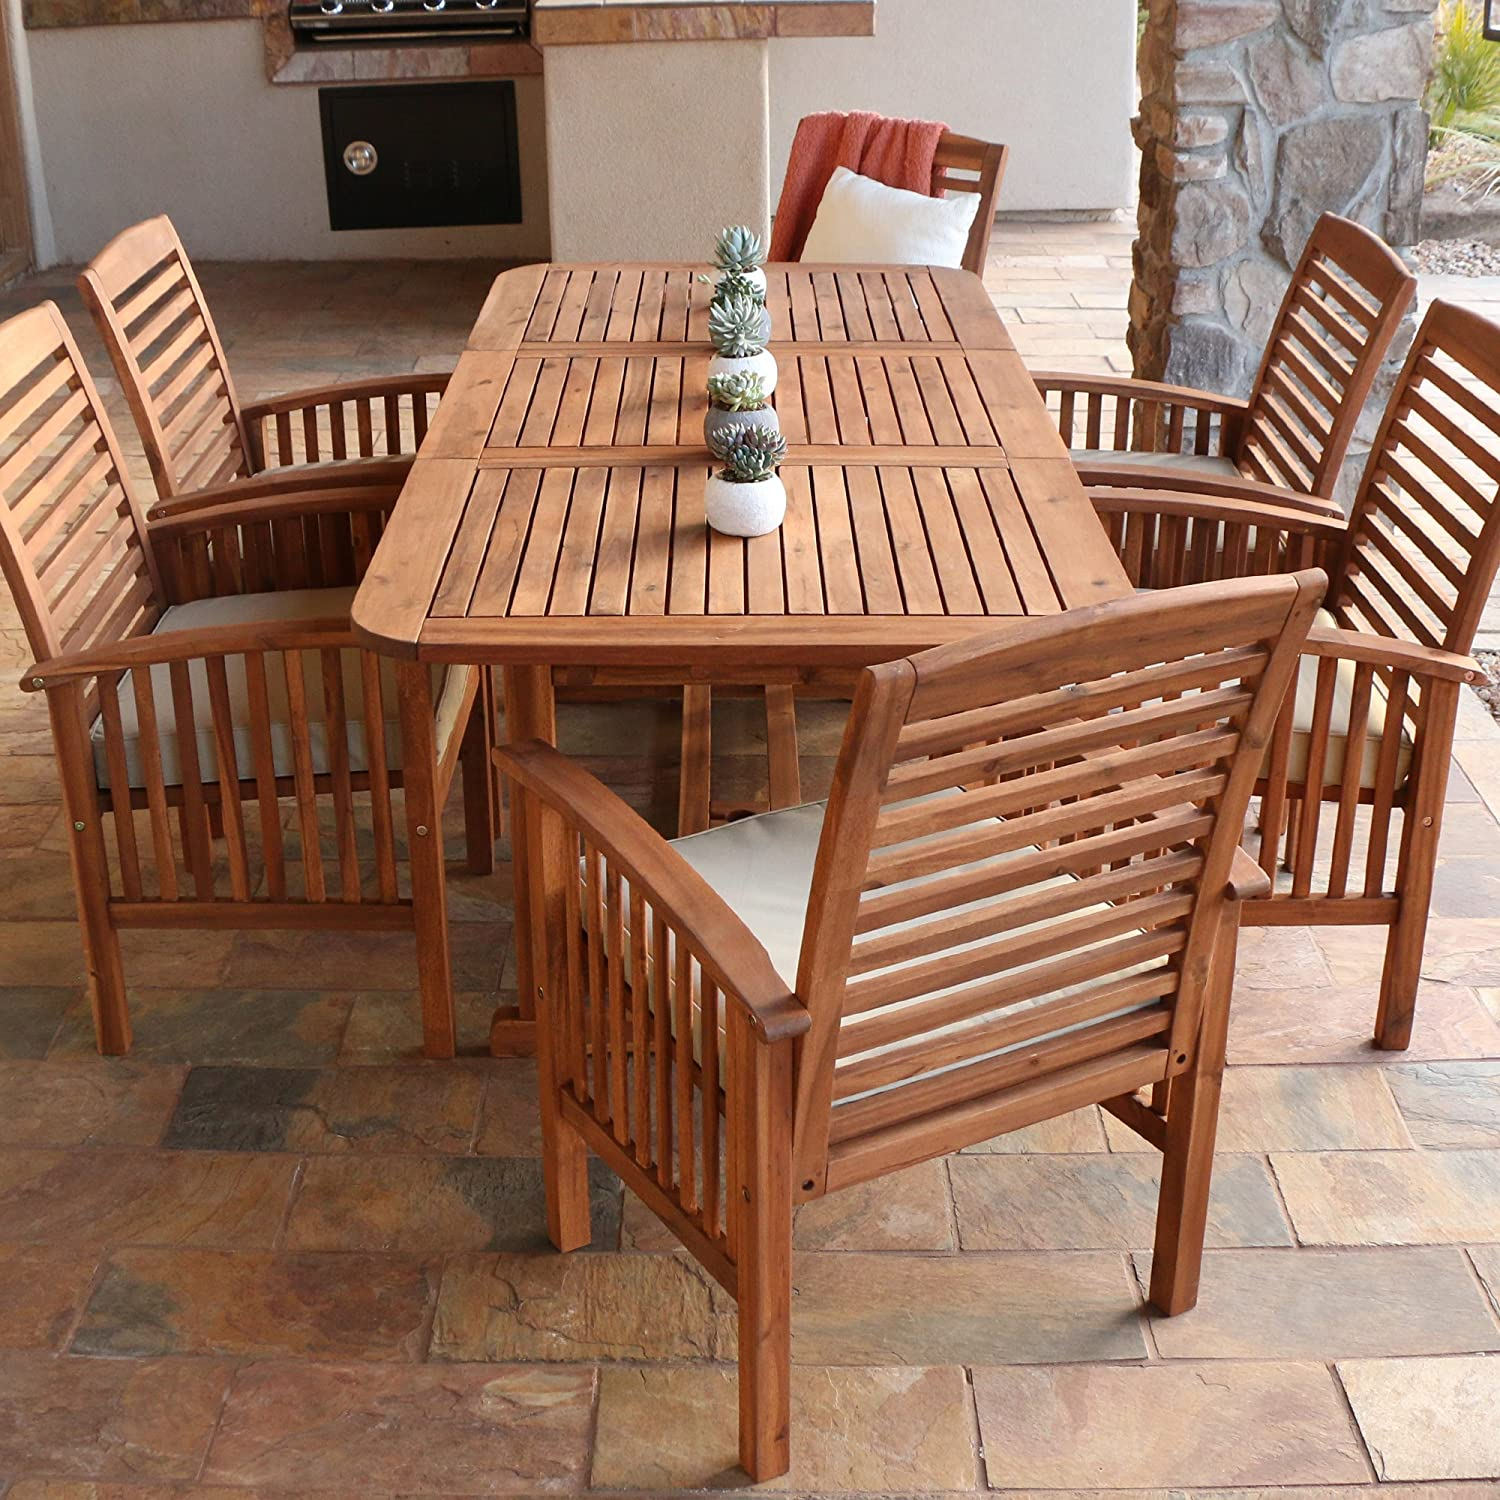 Superieur Amazon.com: Walker Edison Solid Acacia Wood 7 Piece Patio Dining Set: Garden  U0026 Outdoor